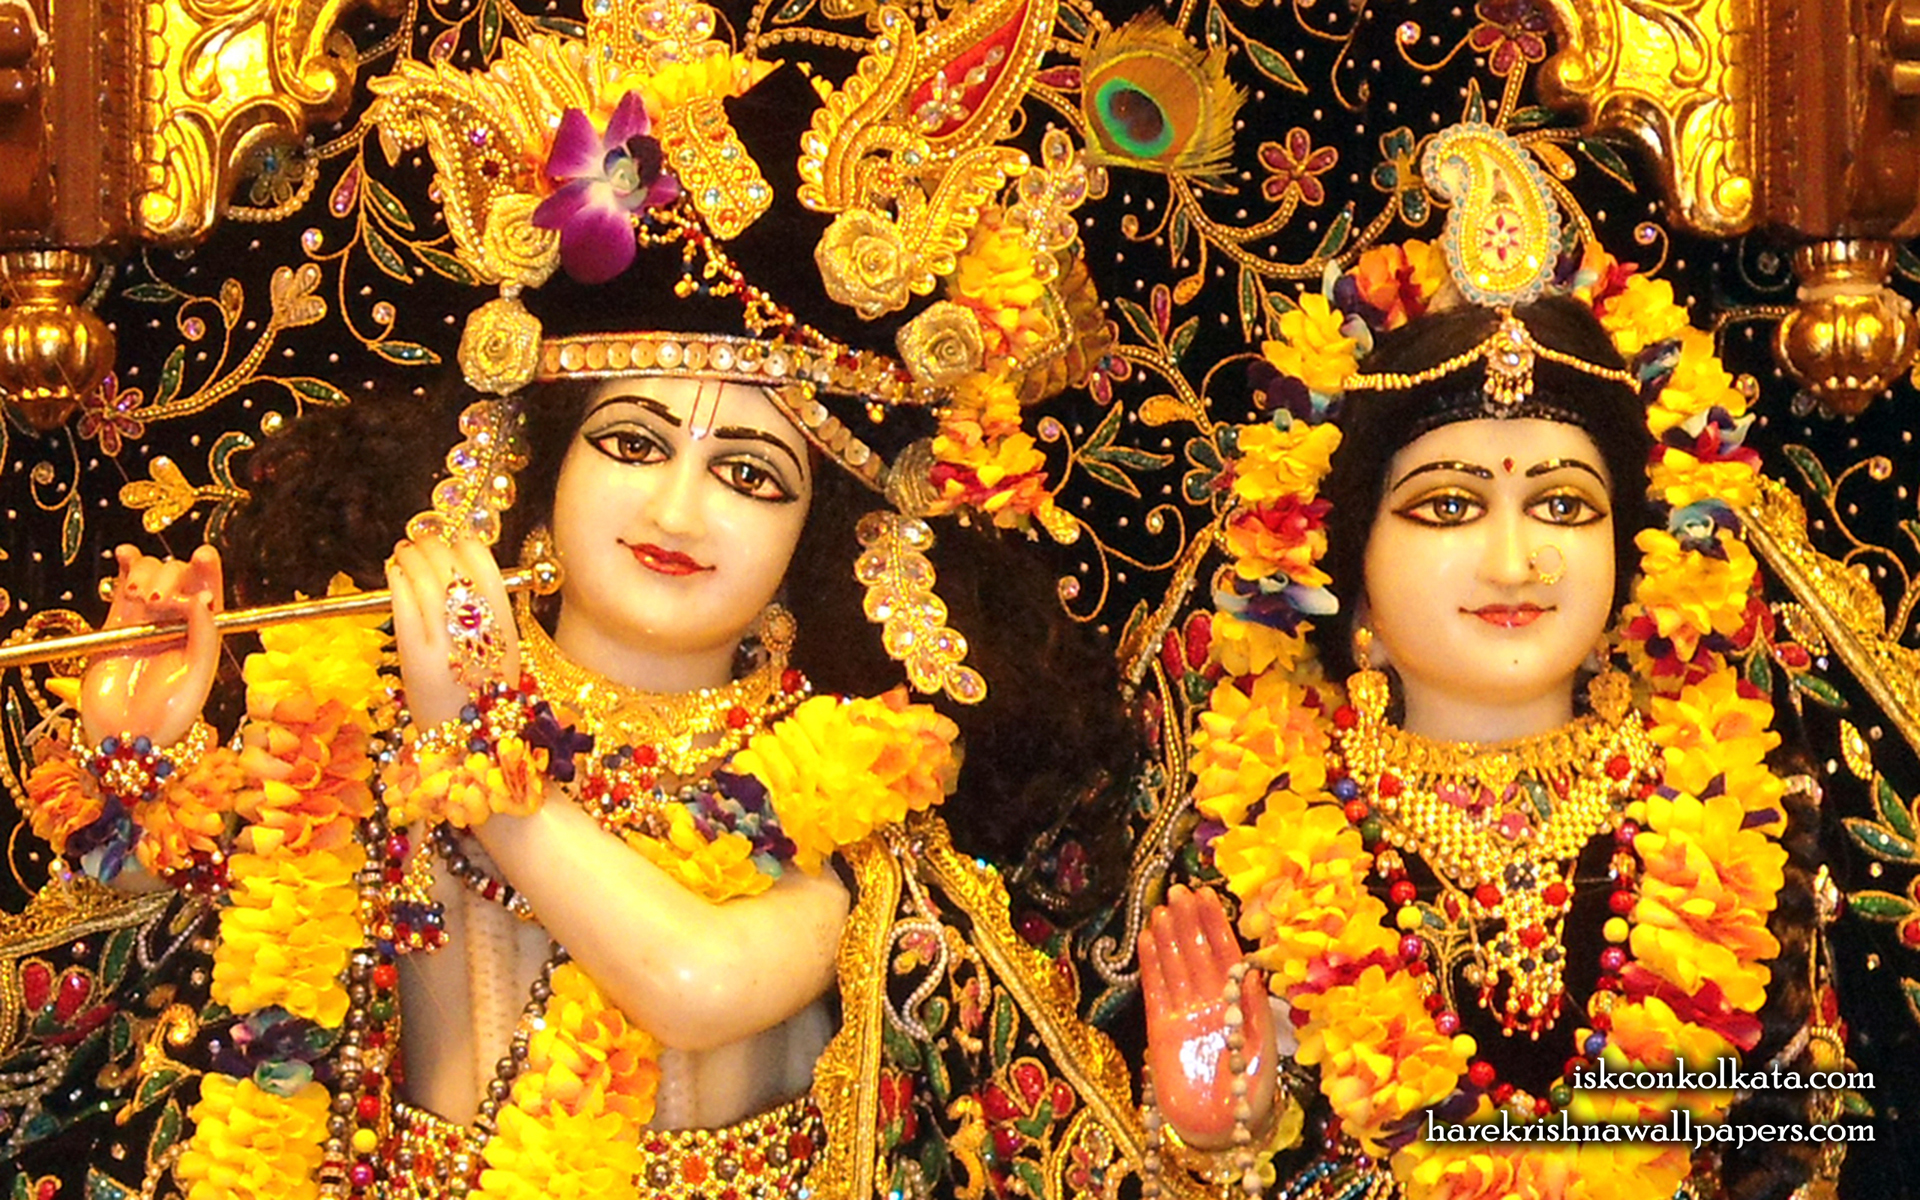 Sri Sri Radha Govinda Close up Wallpaper (001) Size 1920x1200 Download